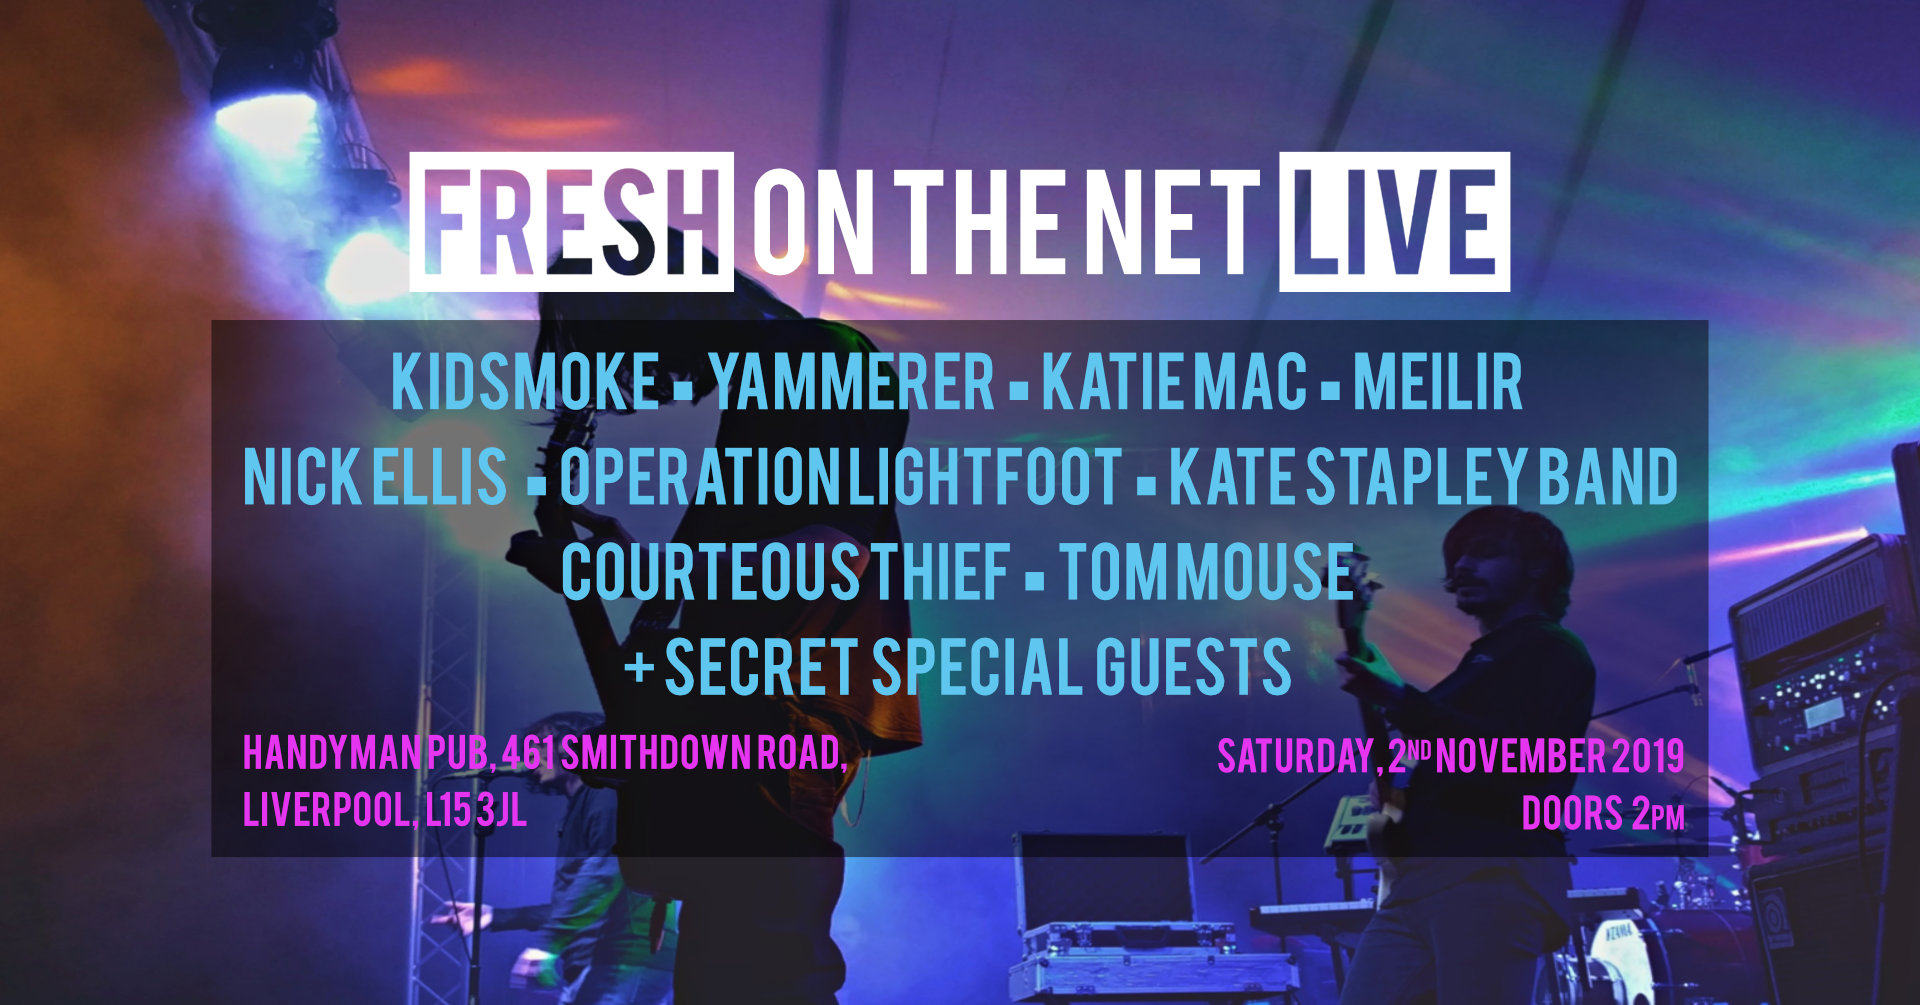 Fresh On The Net Live Liverpool